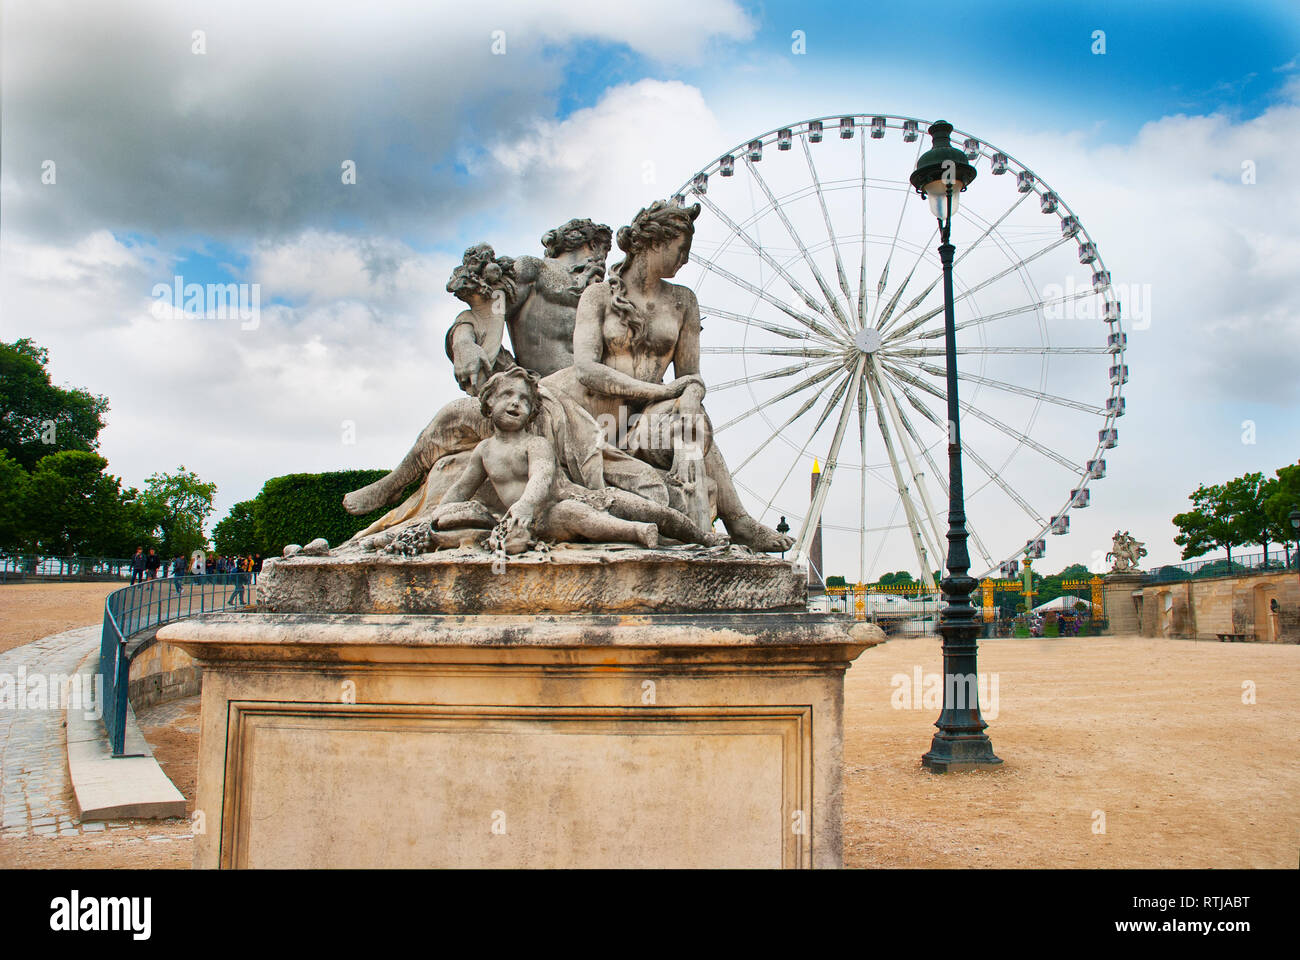 Classic statue  with Ferris wheel in background, Tuileries Garden, Paris, France - Stock Image